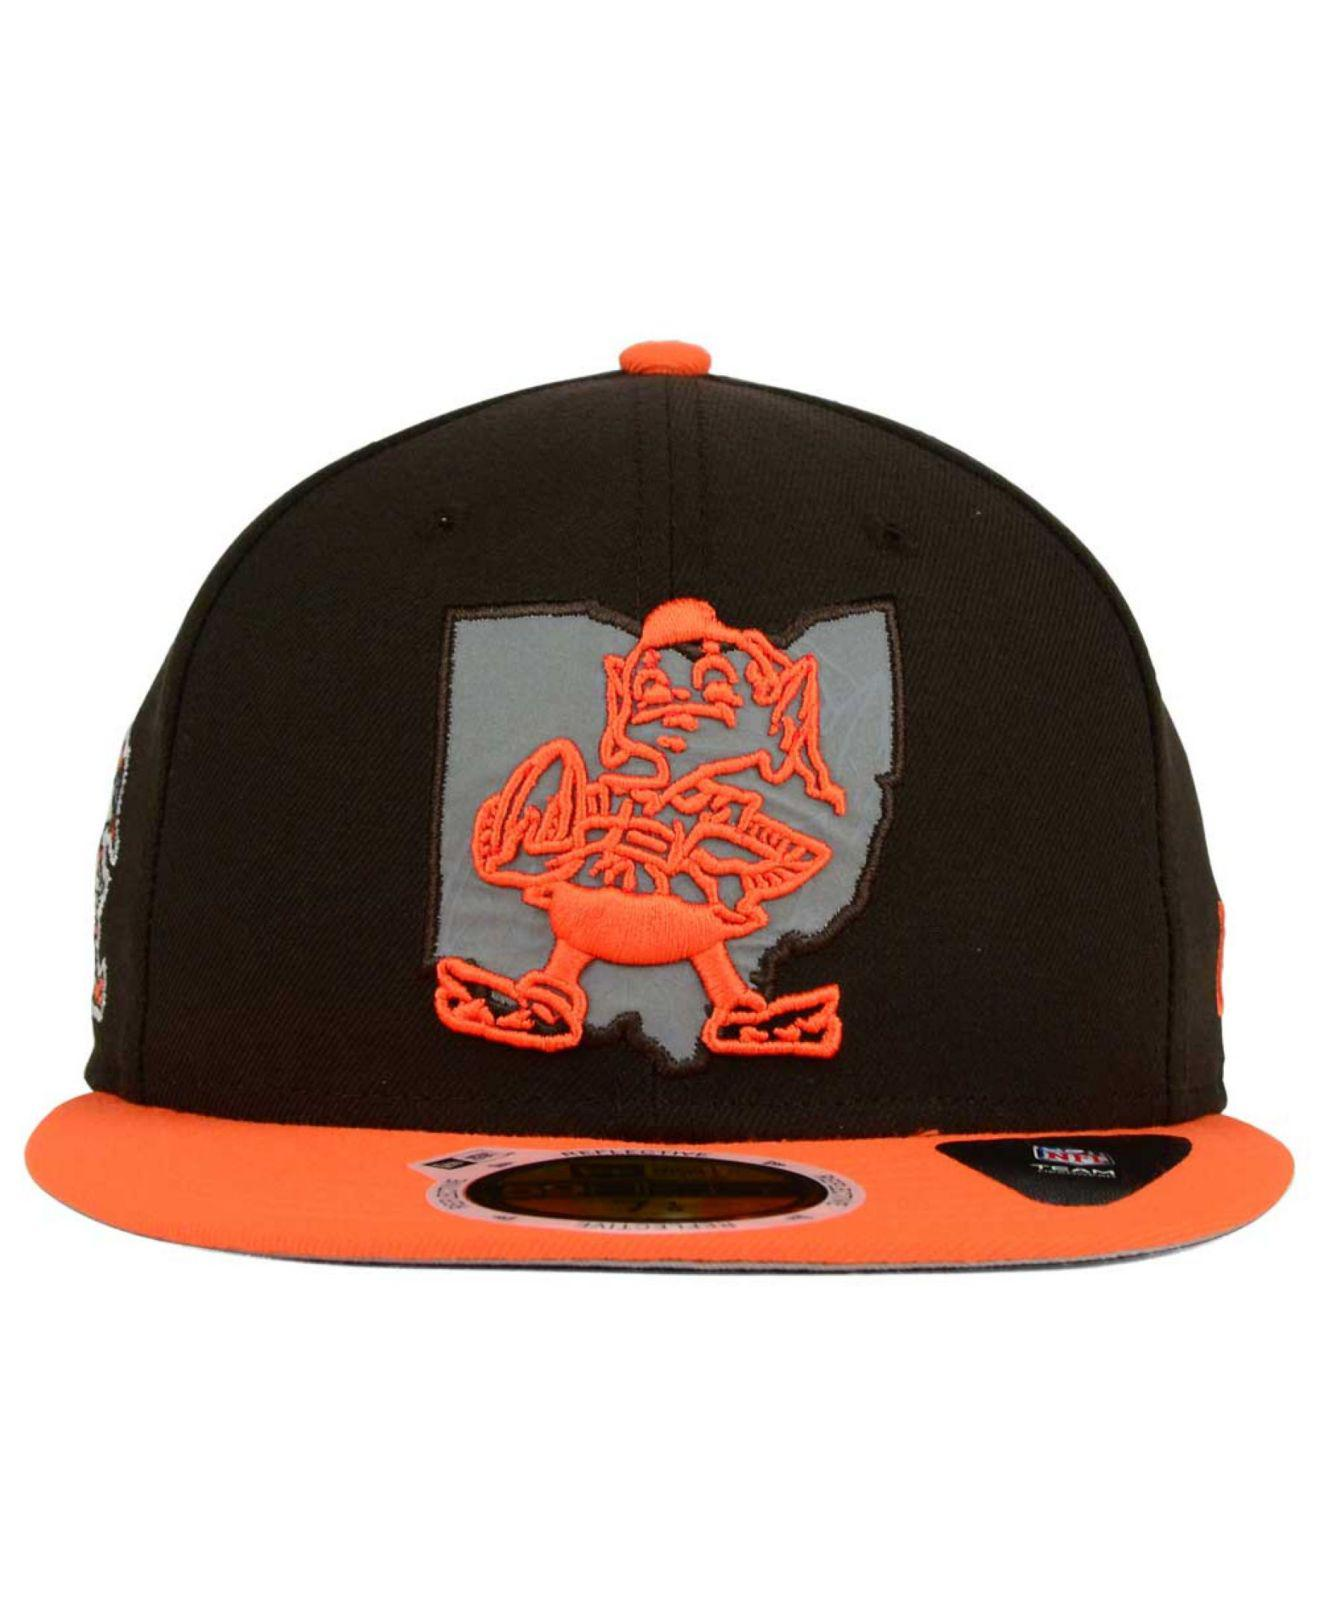 san francisco f1230 27d02 ... order lyst ktz cleveland browns state flective redux 59fifty cap in  orange for men 117a0 72620